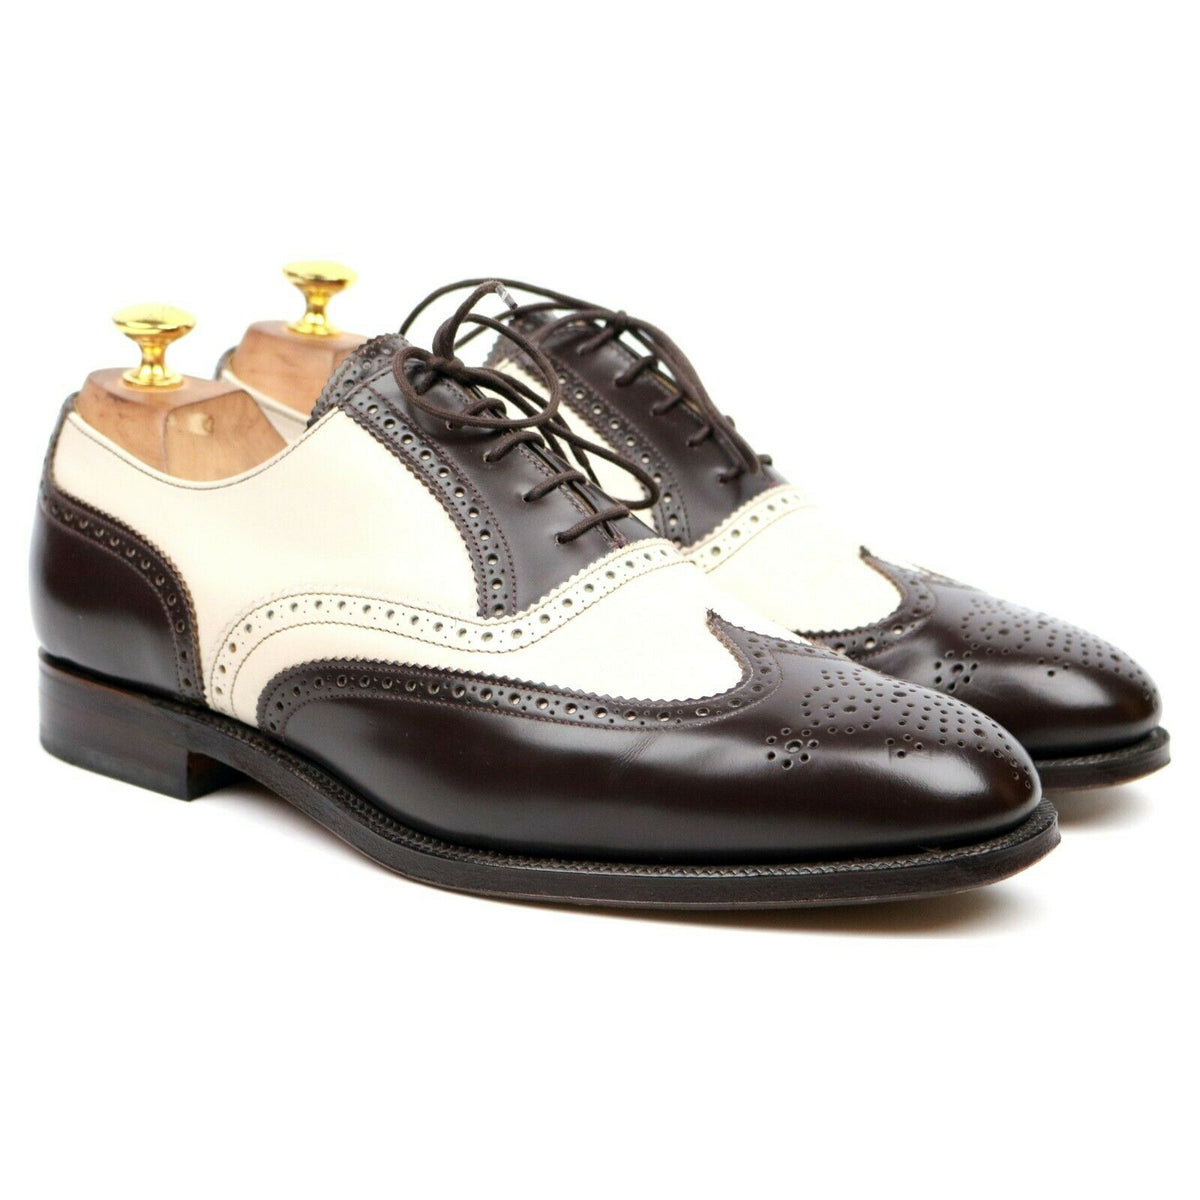 Alfred Sargent 'Melly' Brown Cream Leather Two Tone Spectator Brogues UK 9.5 F